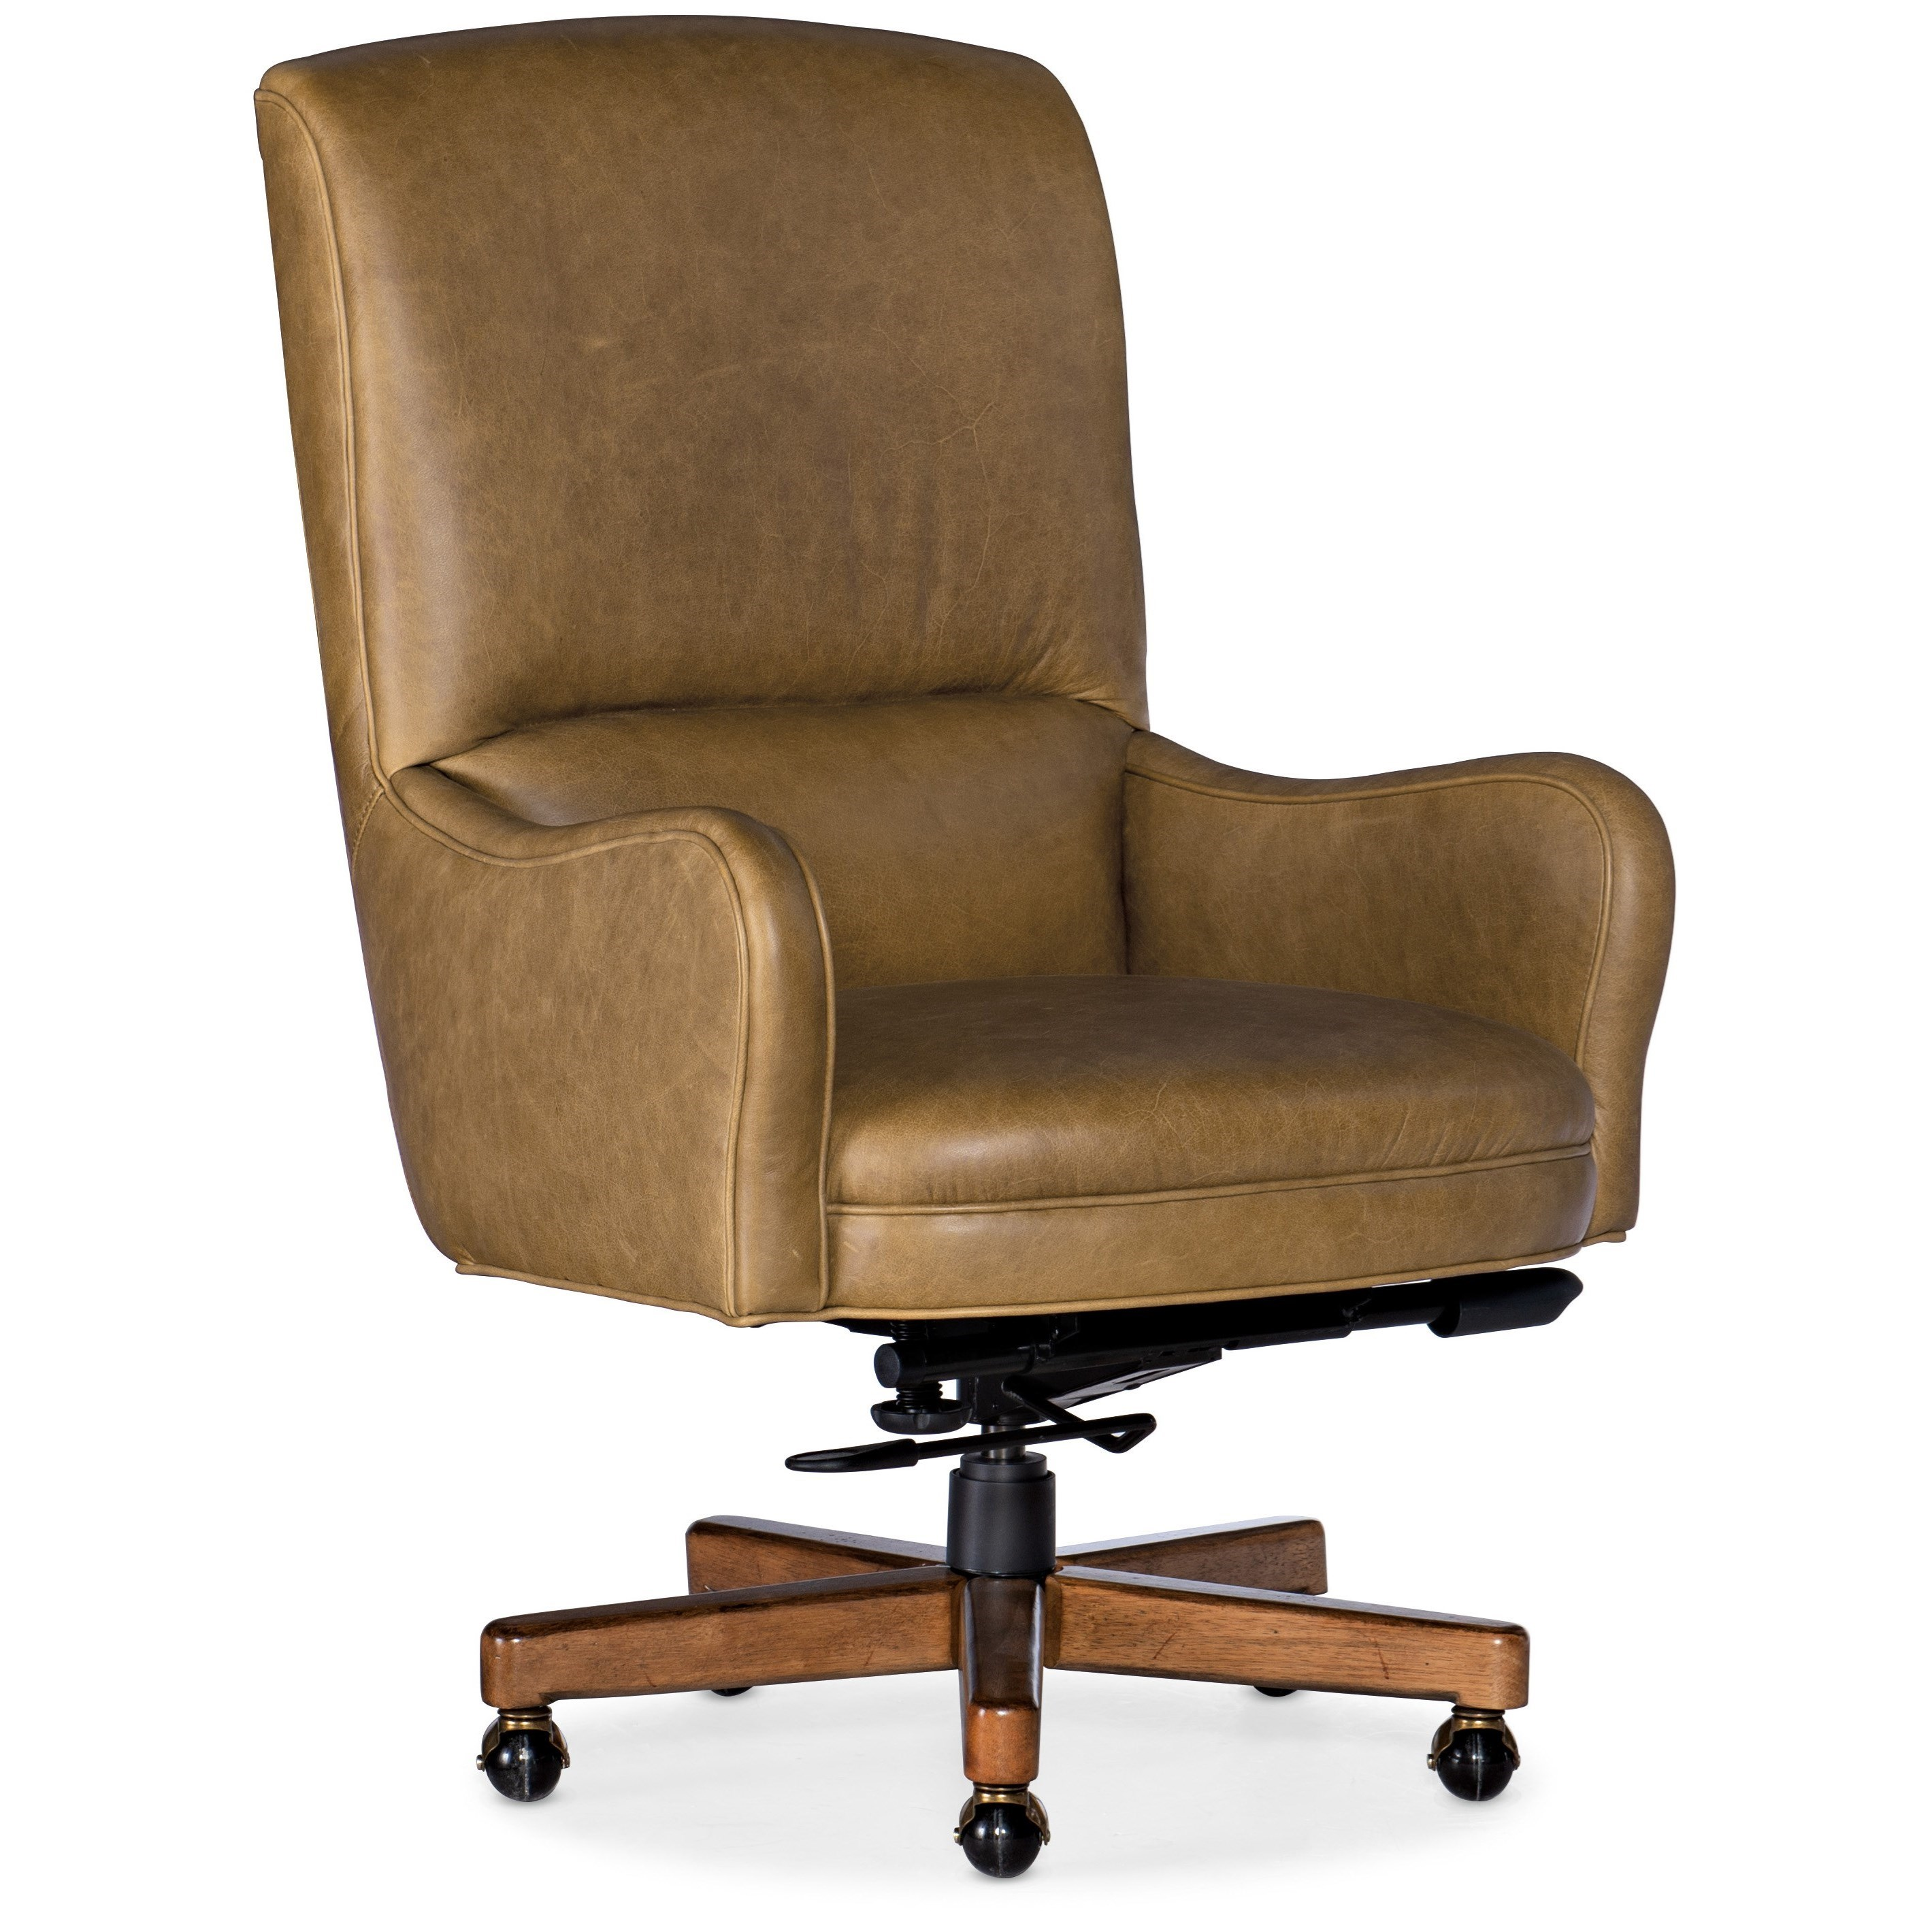 Executive Seating Dayton Executive Swivel Tilt Chair by Hooker Furniture at Zak's Home